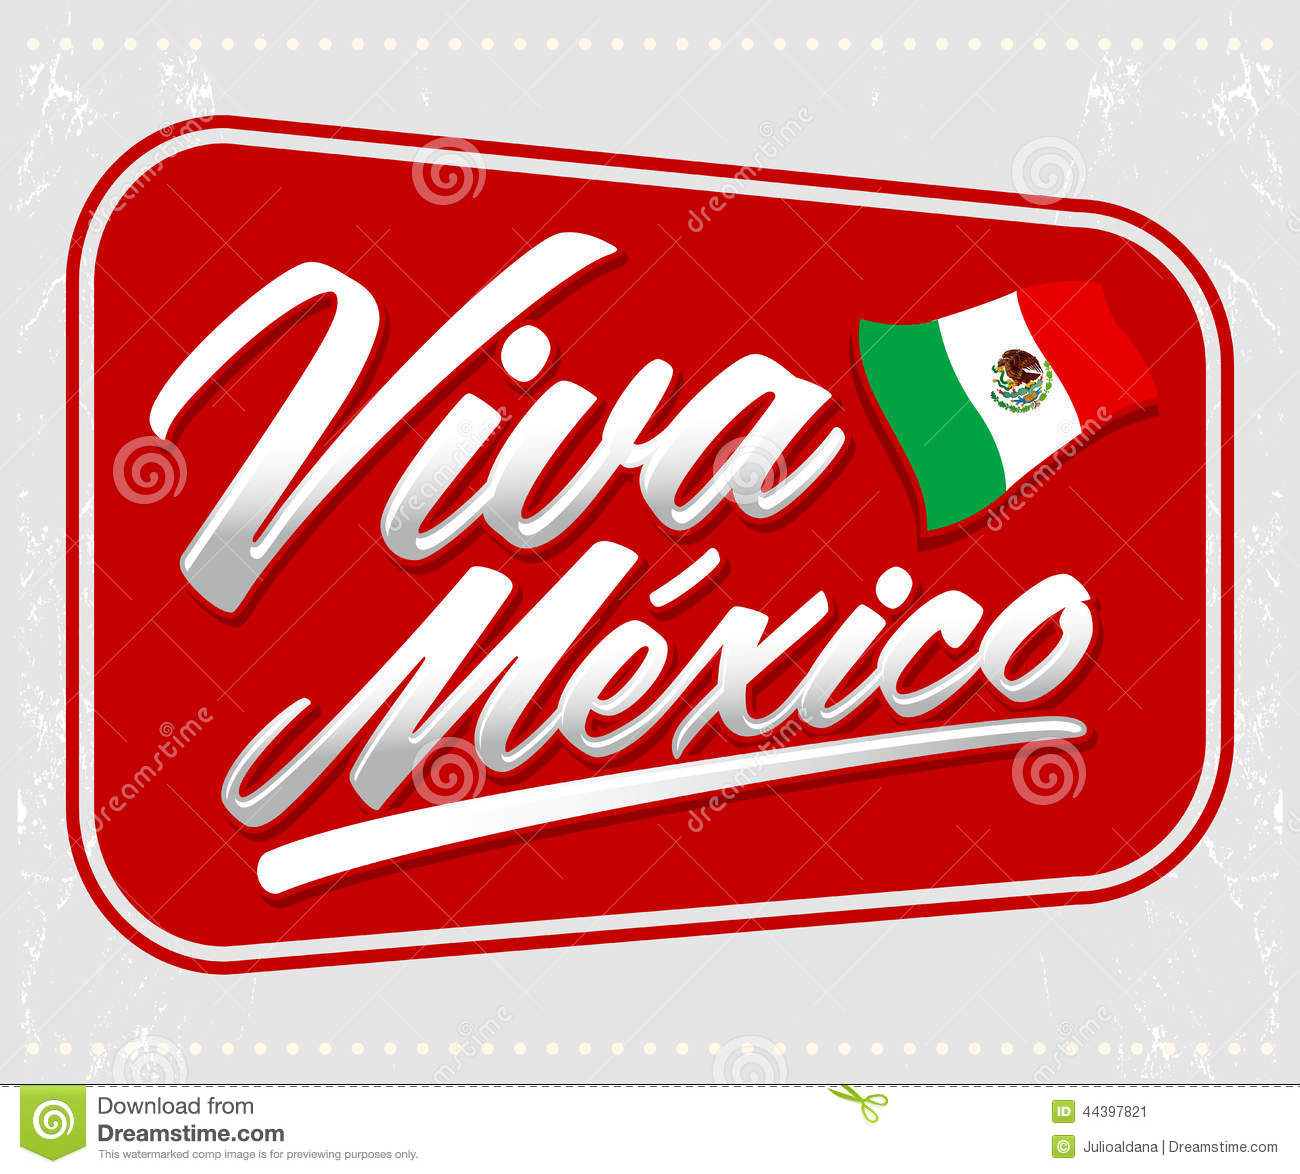 Viva Mexico - mexican holiday lettering